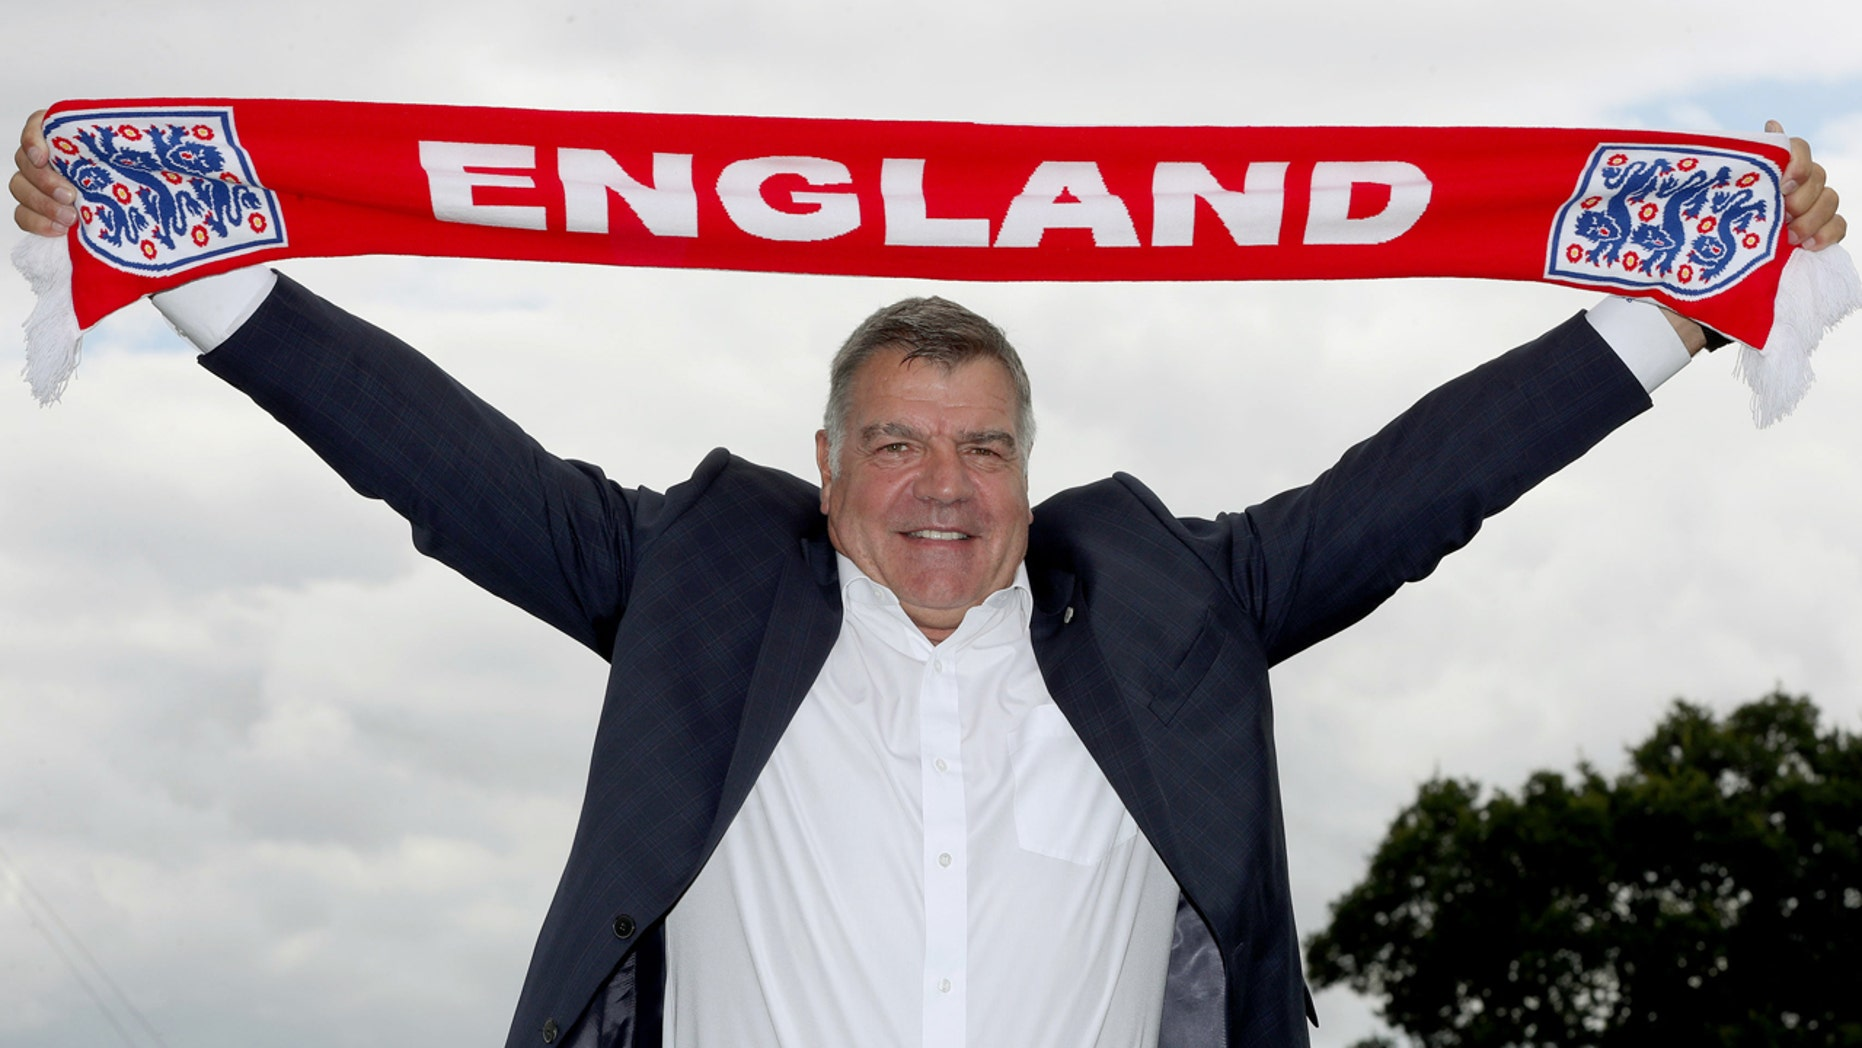 July 25, 2016: Newly appointed England manager Sam Allardyce displays an England scarf, in Burton-on-Trent, England.